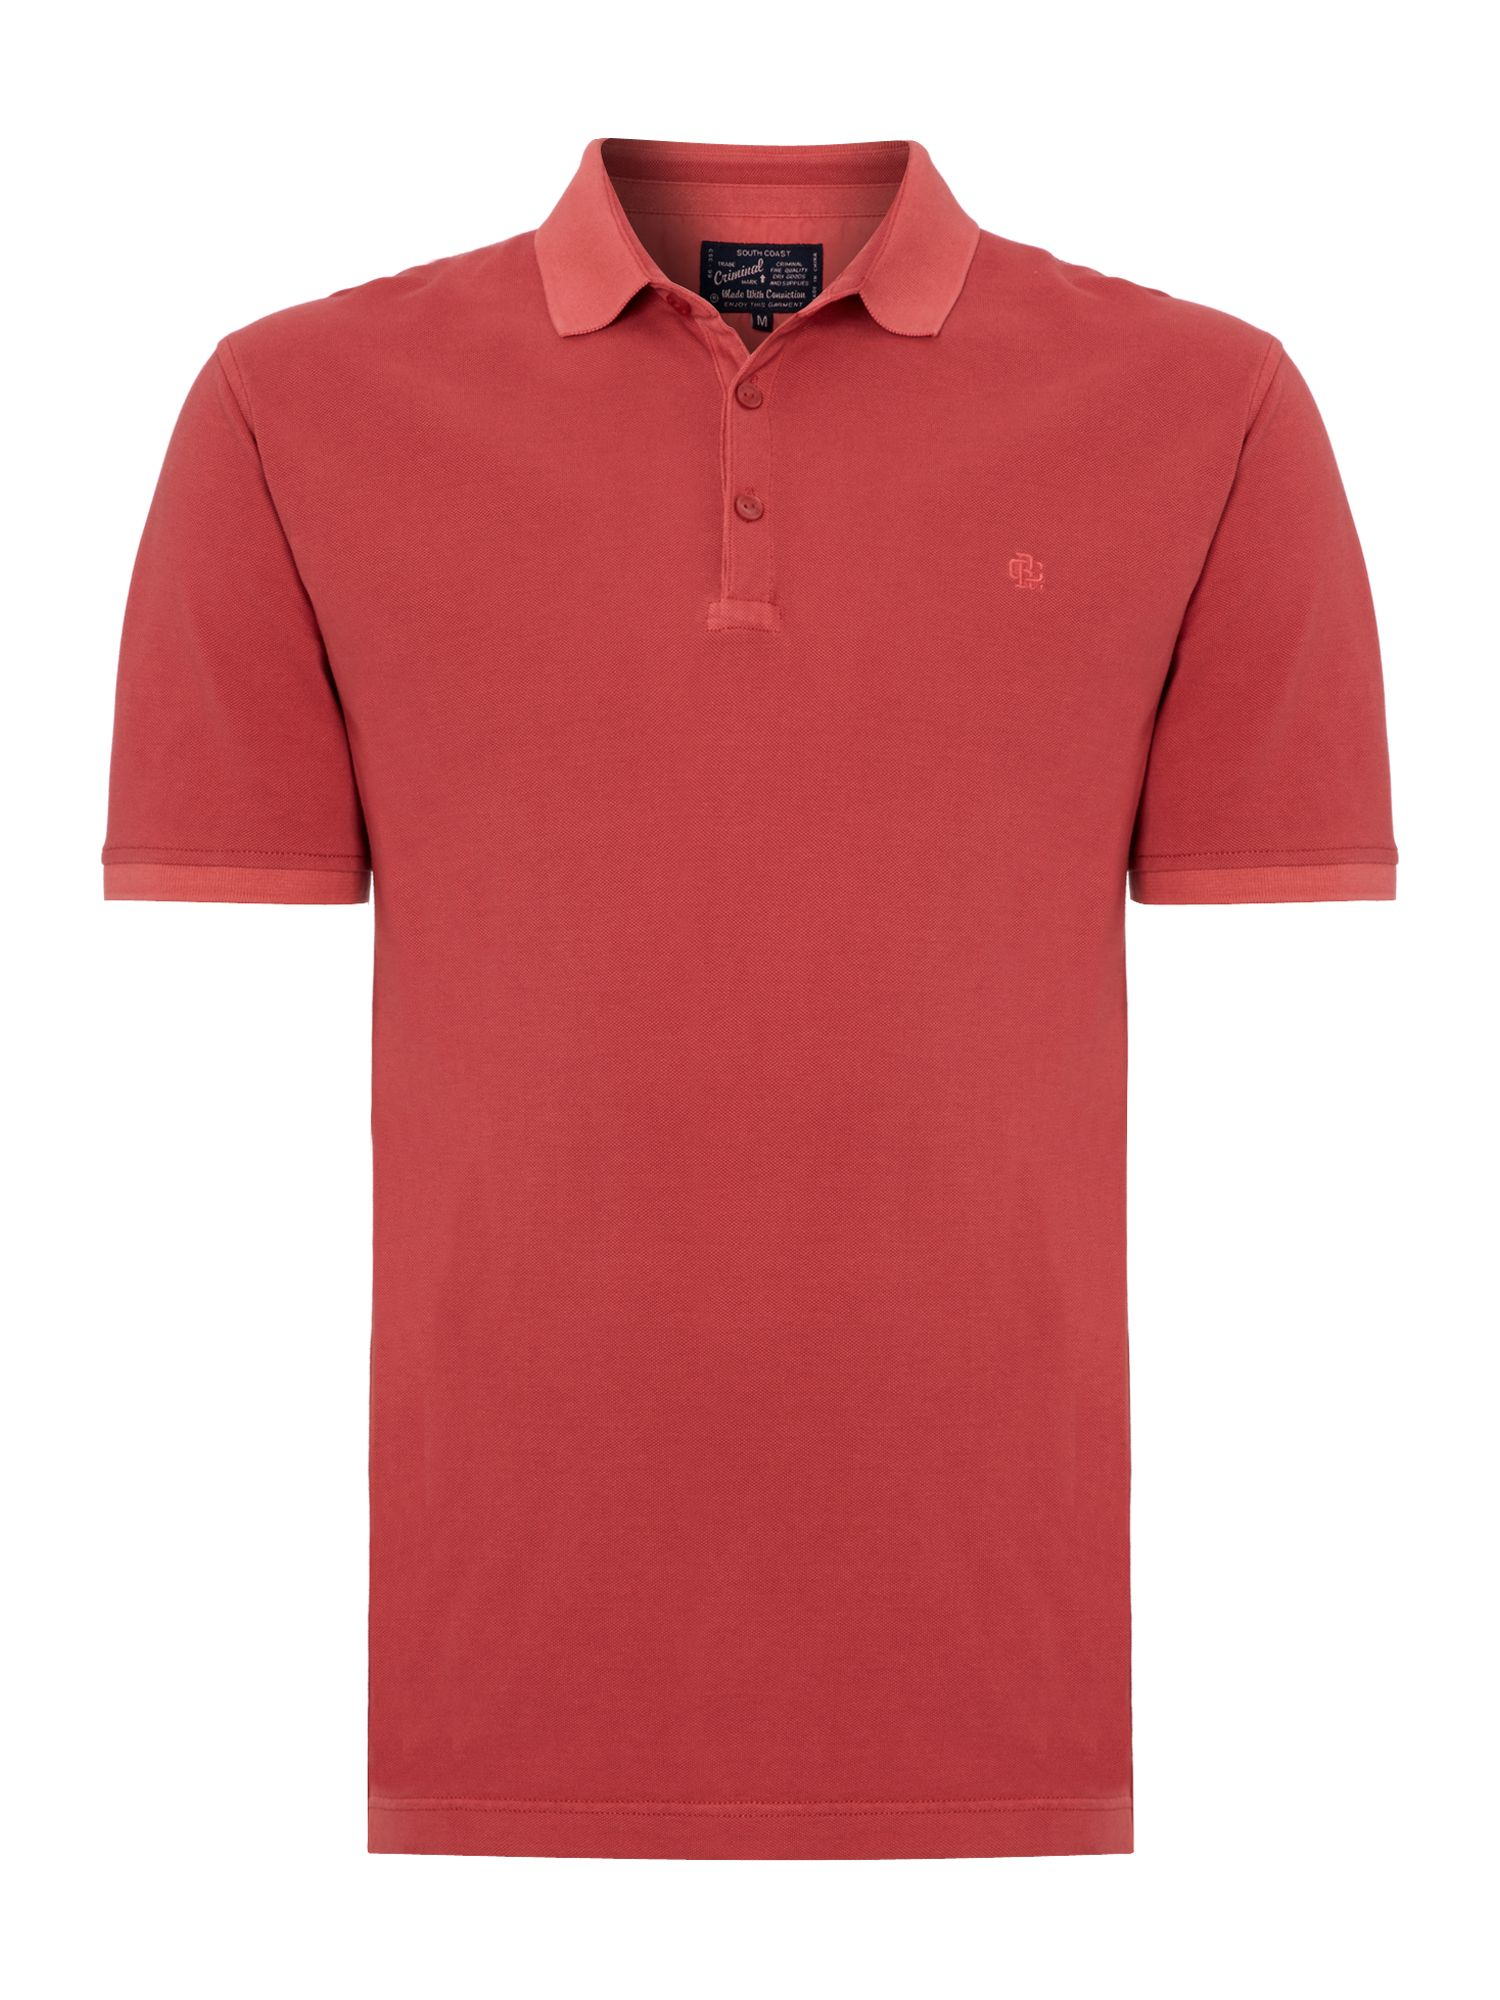 Williamsburg plain pique polo